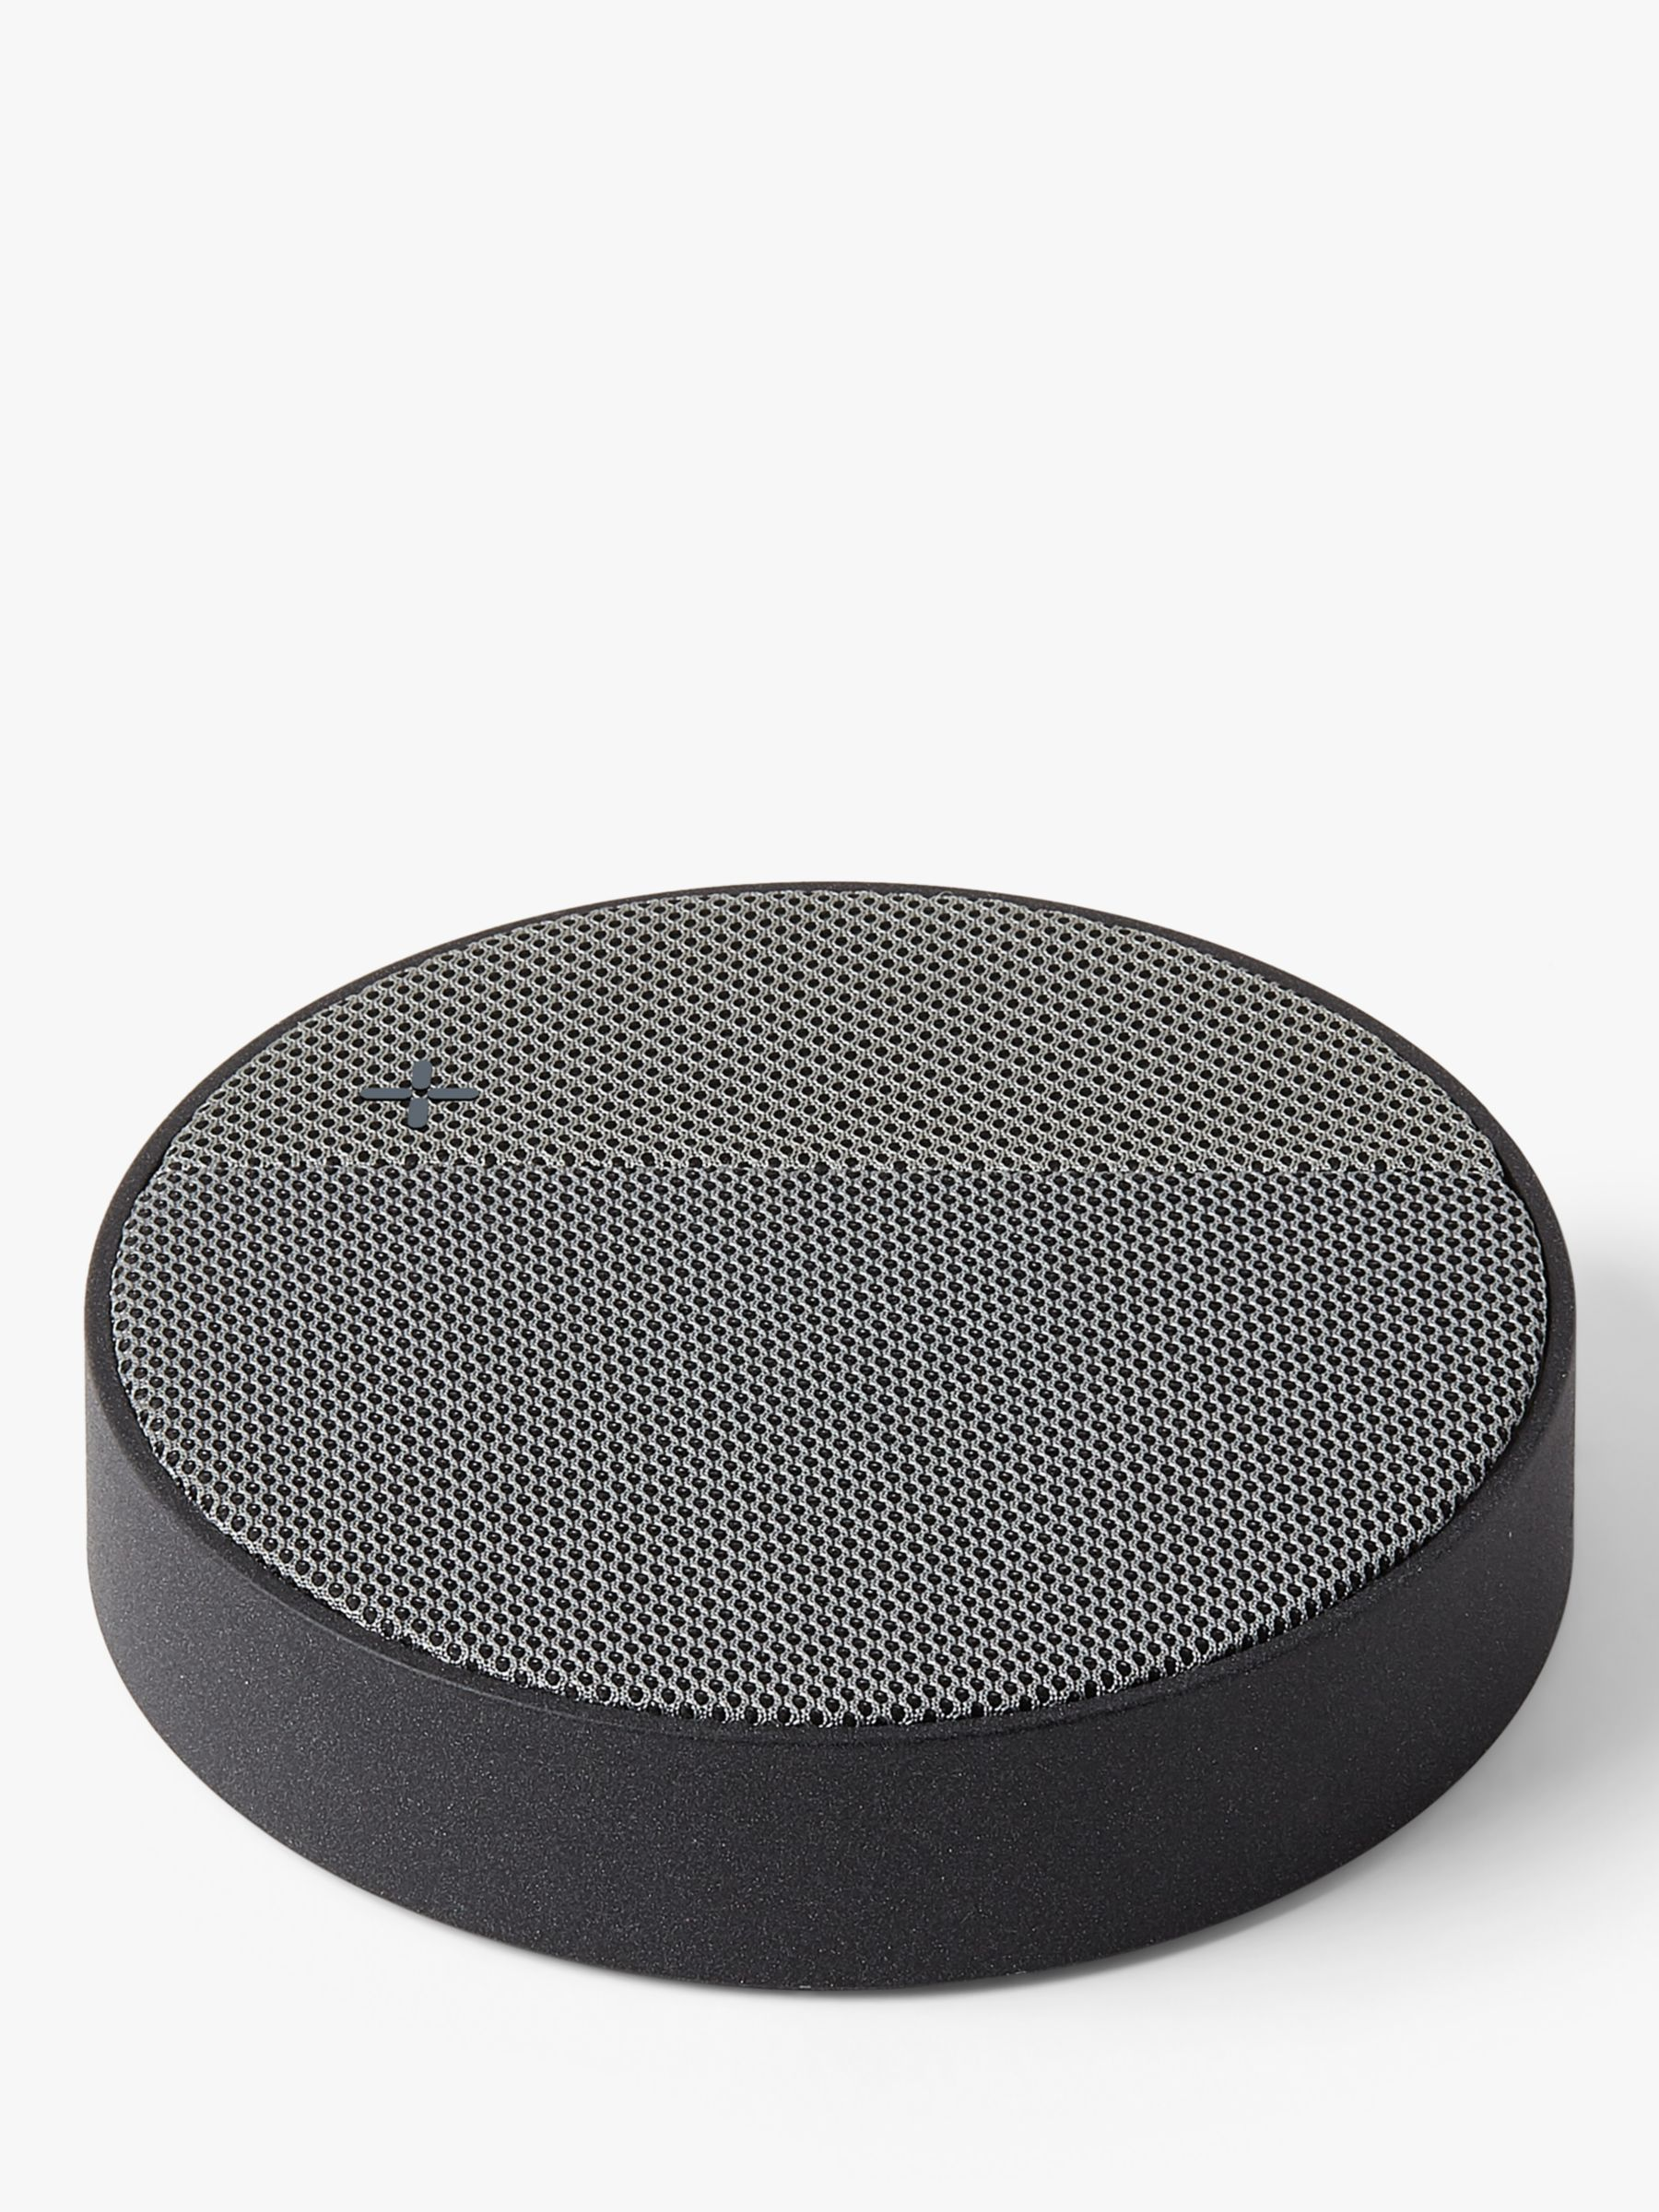 Lexon Lexon Oslo Energy Qi Wireless Charging Pad & Portable Bluetooth Speaker, Dark Grey/Grey